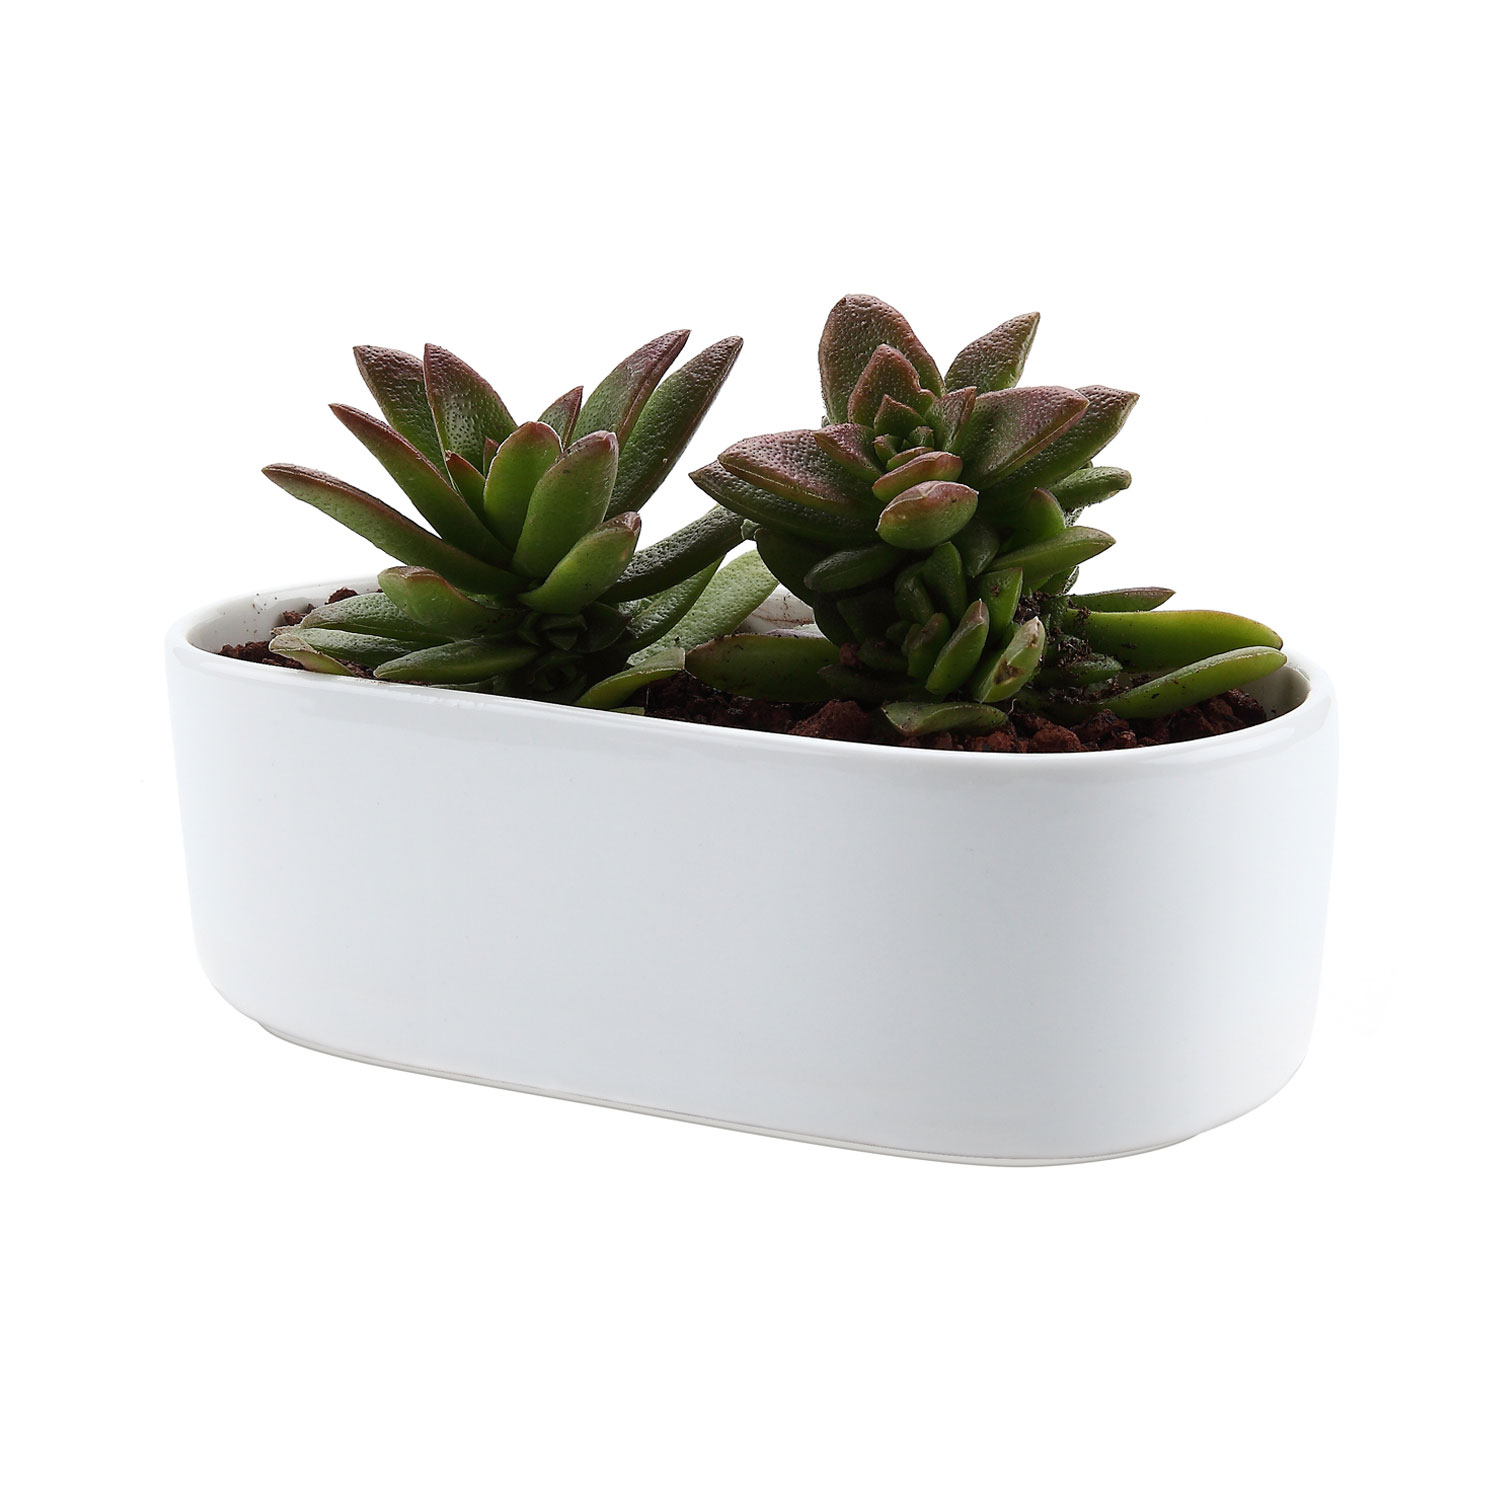 Cactus Planting Pots Us 16 71 20 Off T4u 6 5 Inch Ceramic White Modern Oval Design Succulent Cactus Plant Pot Flower Pot Container Planter In Flower Pots Planters From